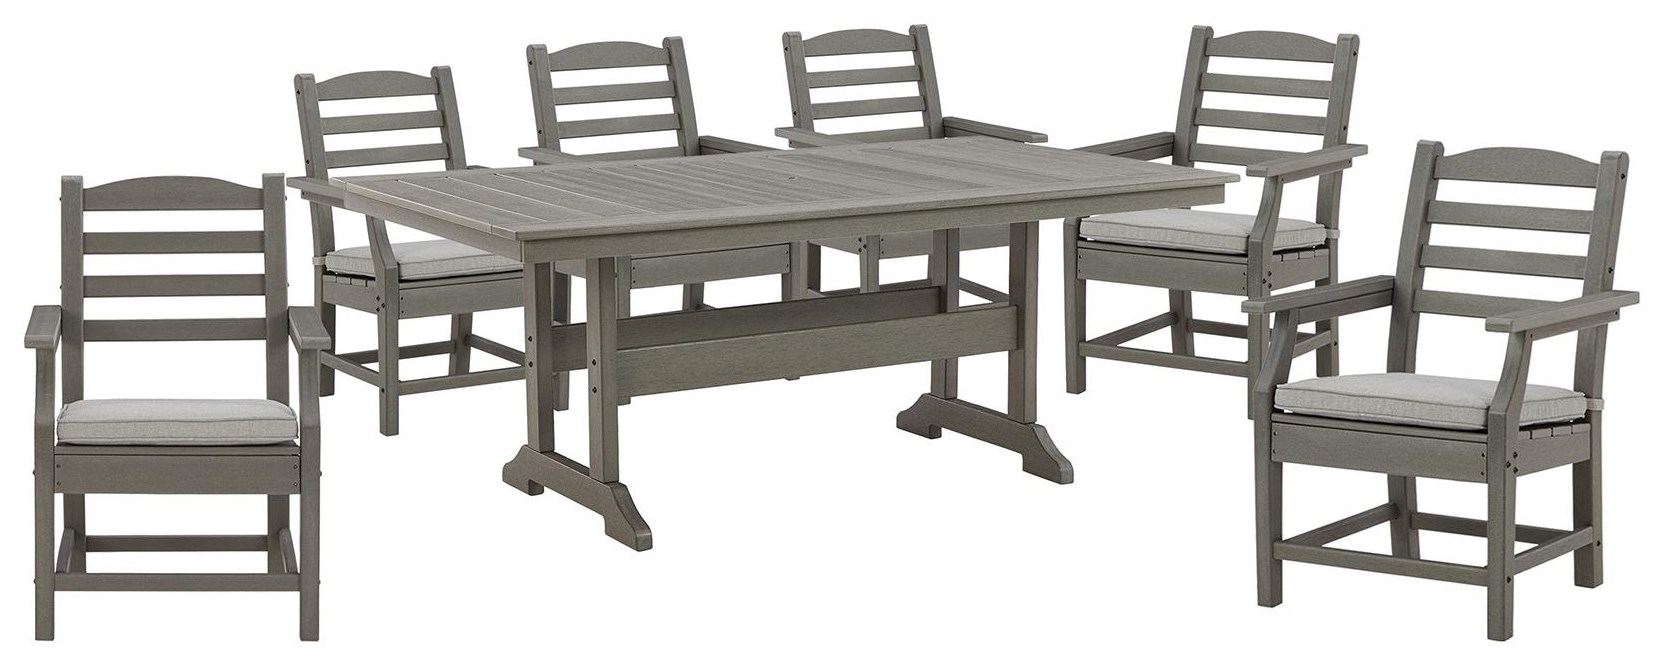 """Visola 42"""" x 72"""" Table and 6 Arm Chairs by Ashley (Signature Design) at Johnny Janosik"""